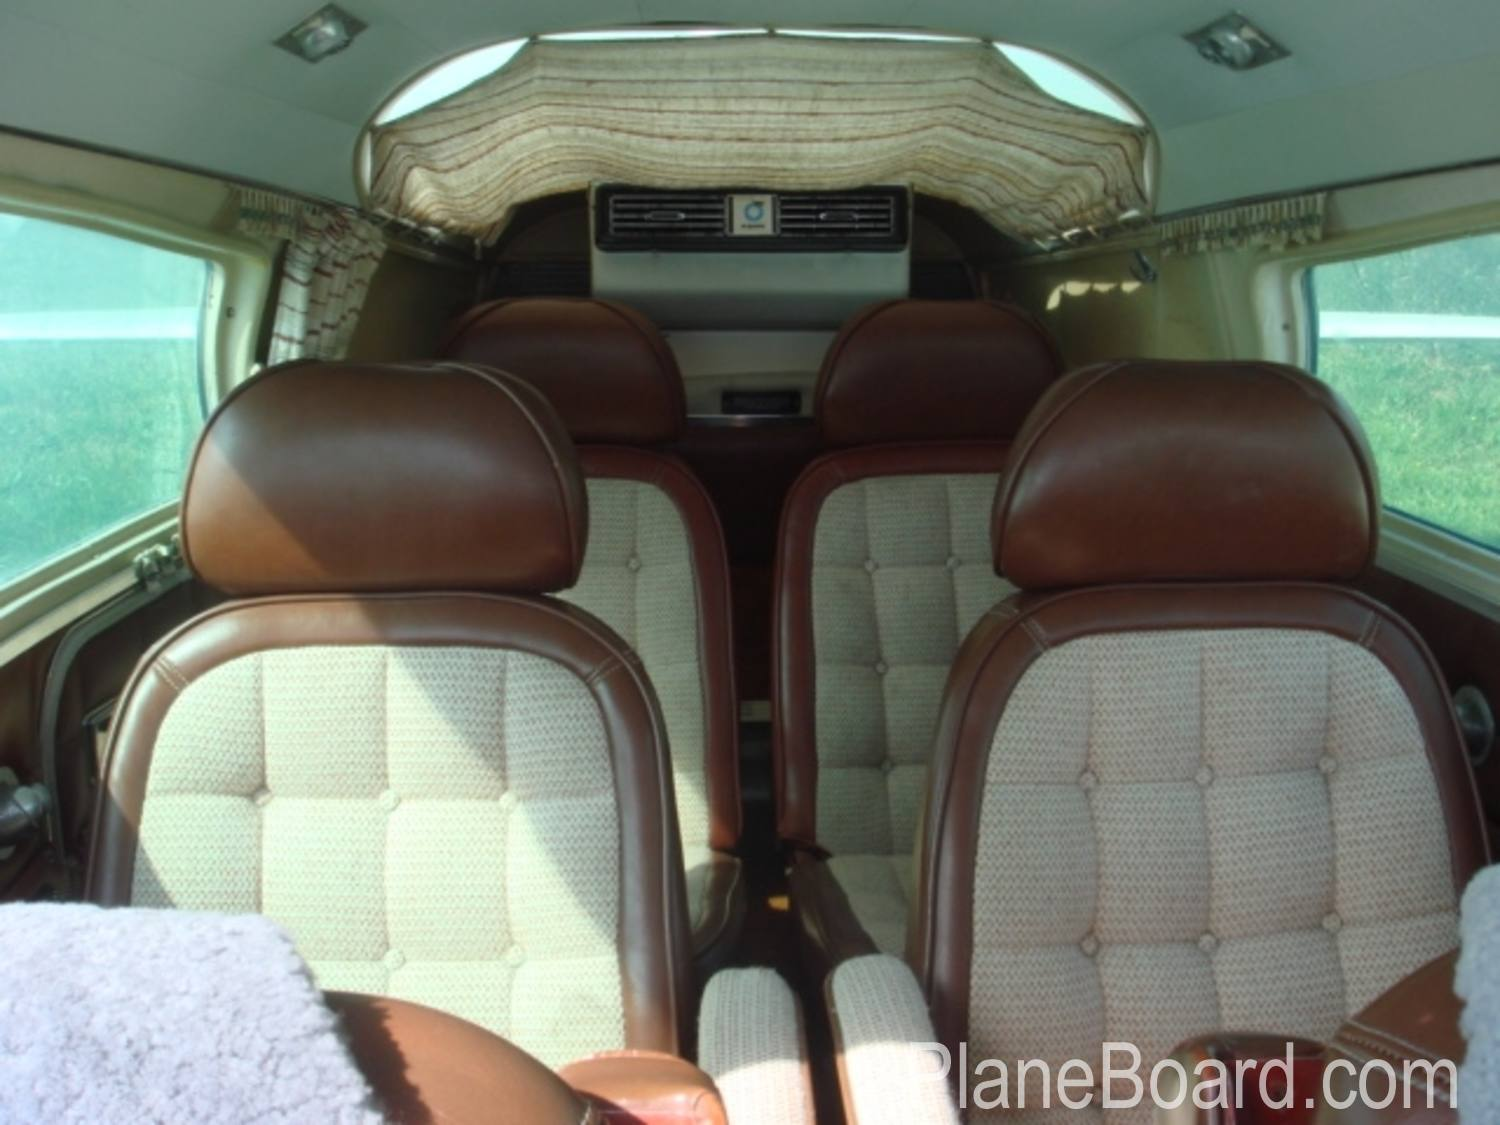 1976 Cessna T310r For Sale N364ny Planeboard